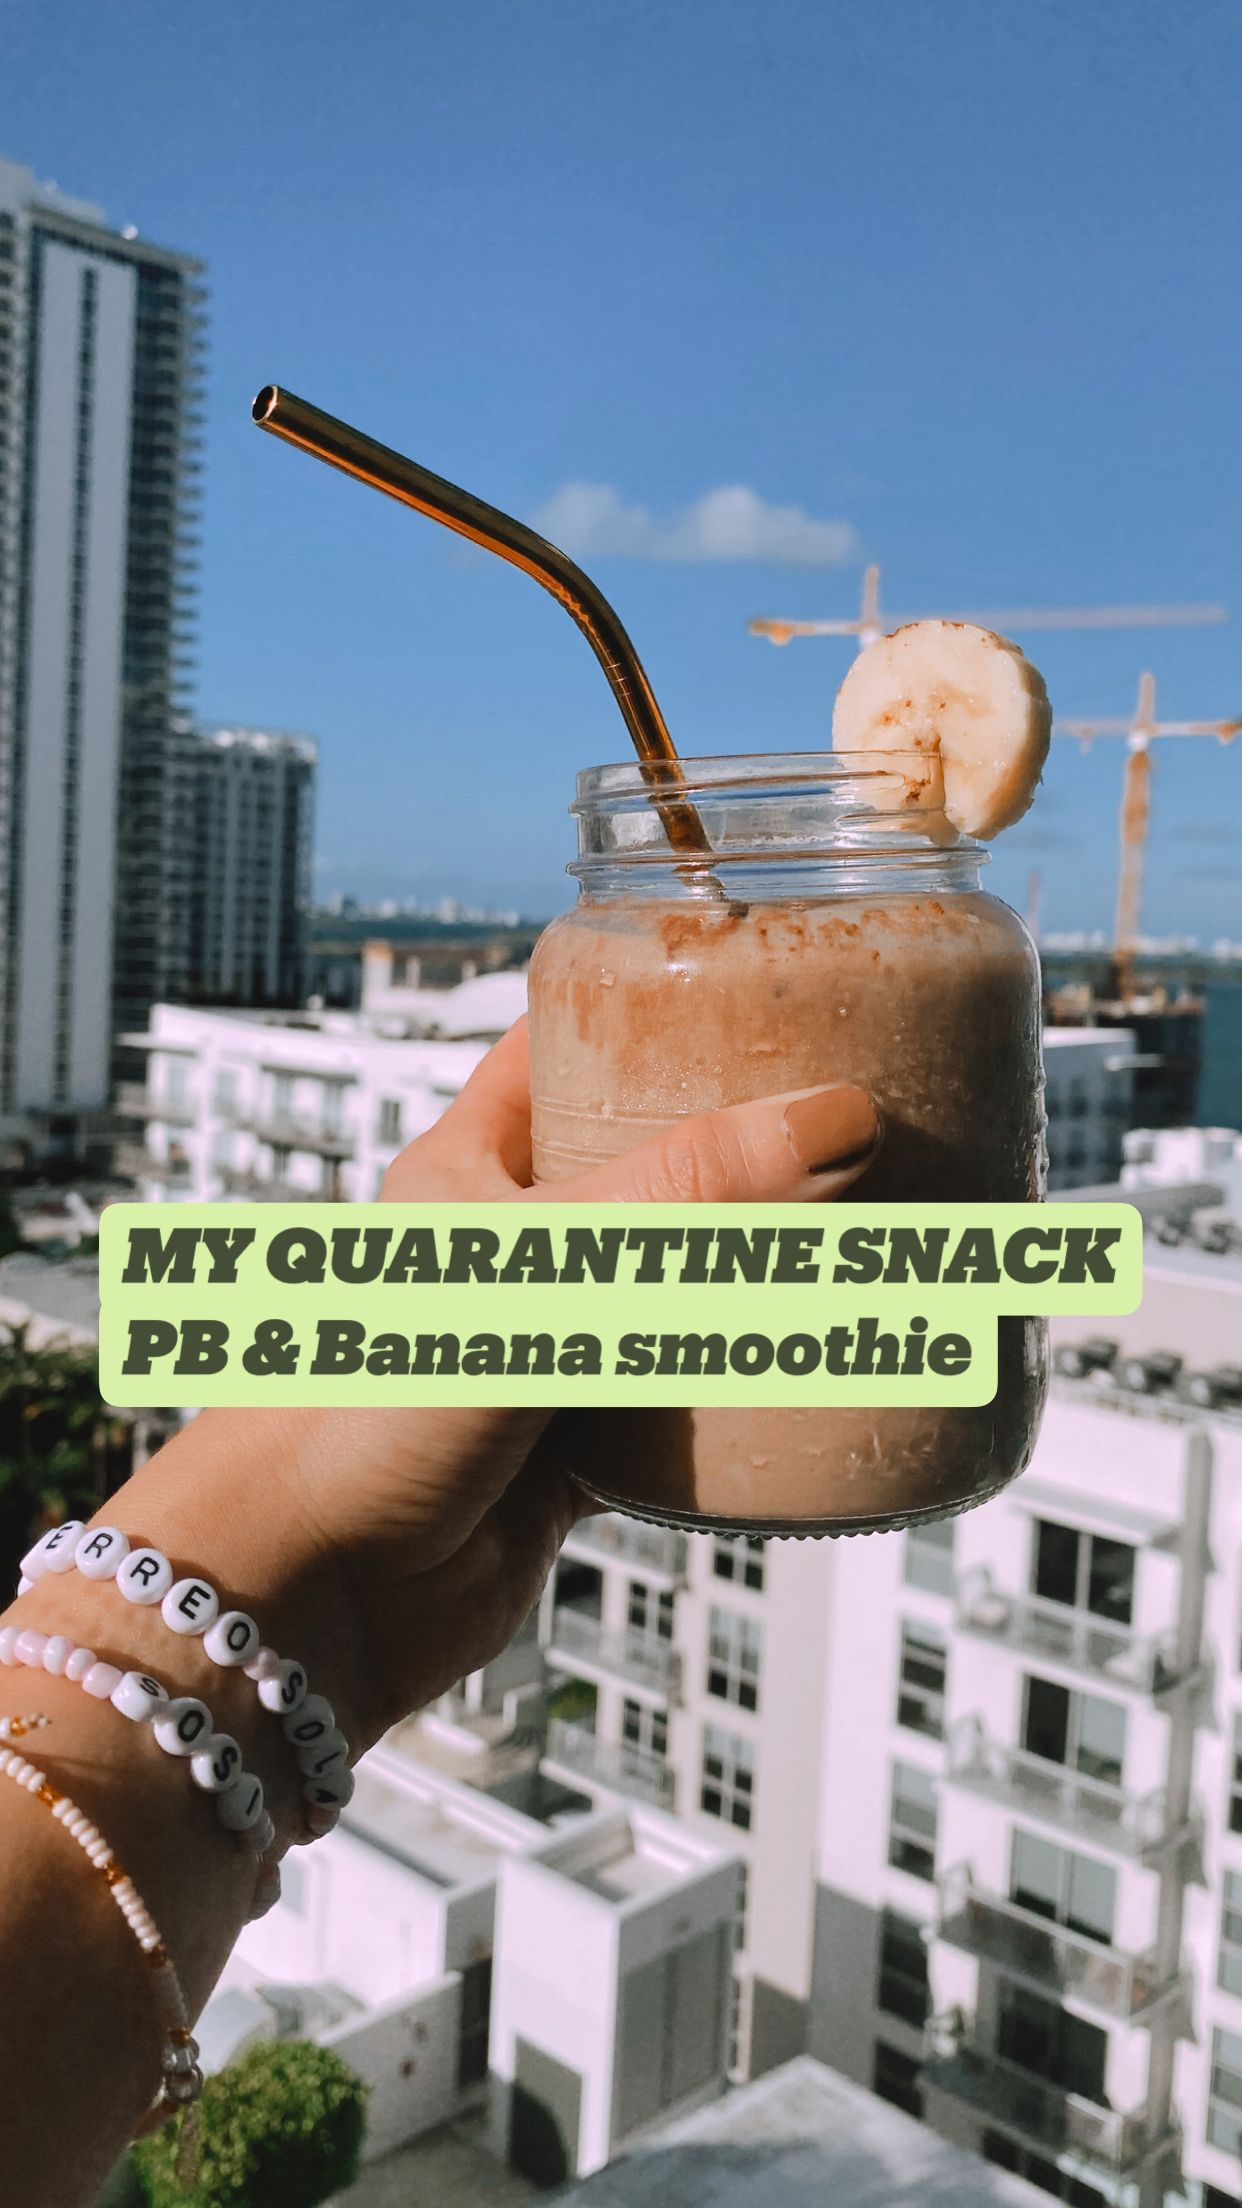 MY QUARANTINE SNACK PB & Banana smoothie